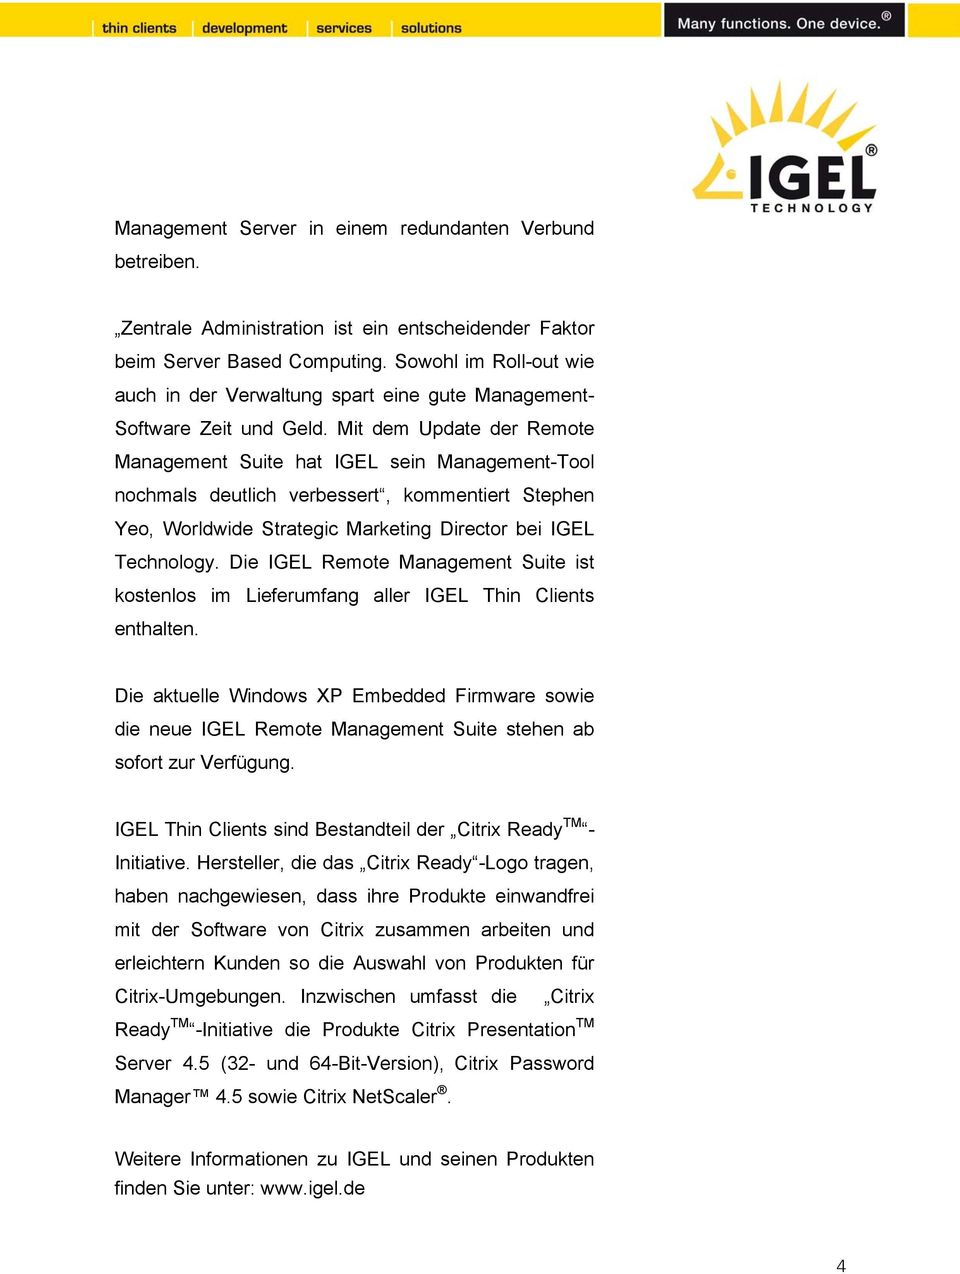 Mit dem Update der Remote Management Suite hat IGEL sein Management-Tool nochmals deutlich verbessert, kommentiert Stephen Yeo, Worldwide Strategic Marketing Director bei IGEL Technology.